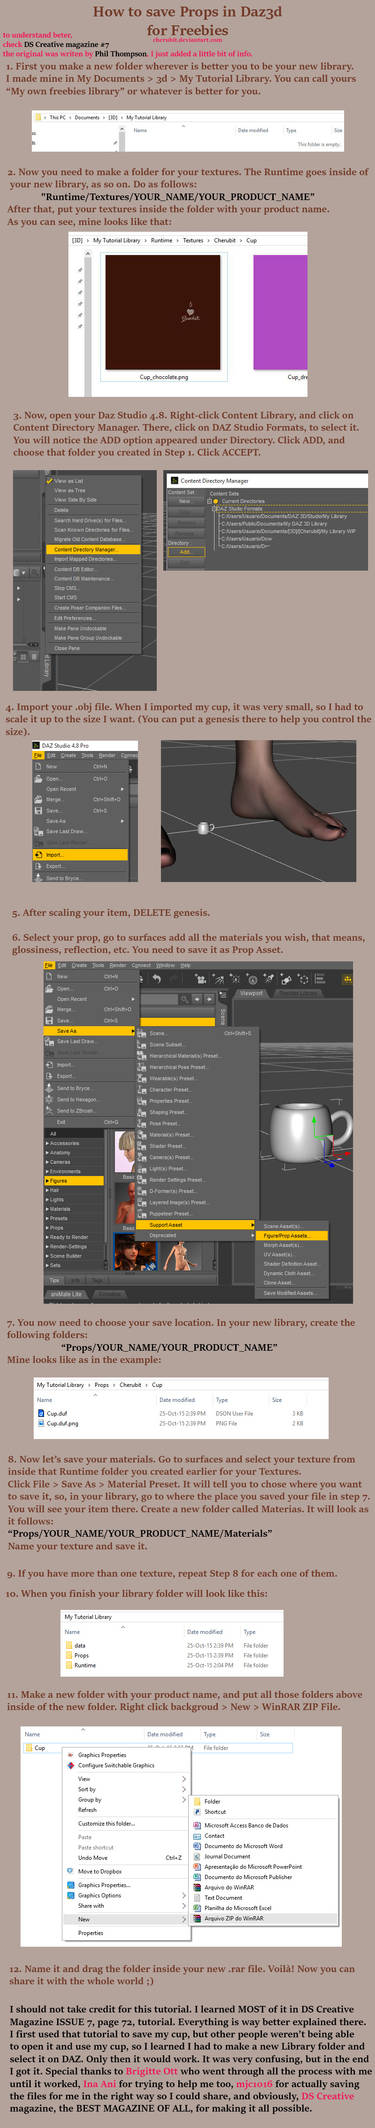 Tutorial: How to save Props in Daz3d for Freebies